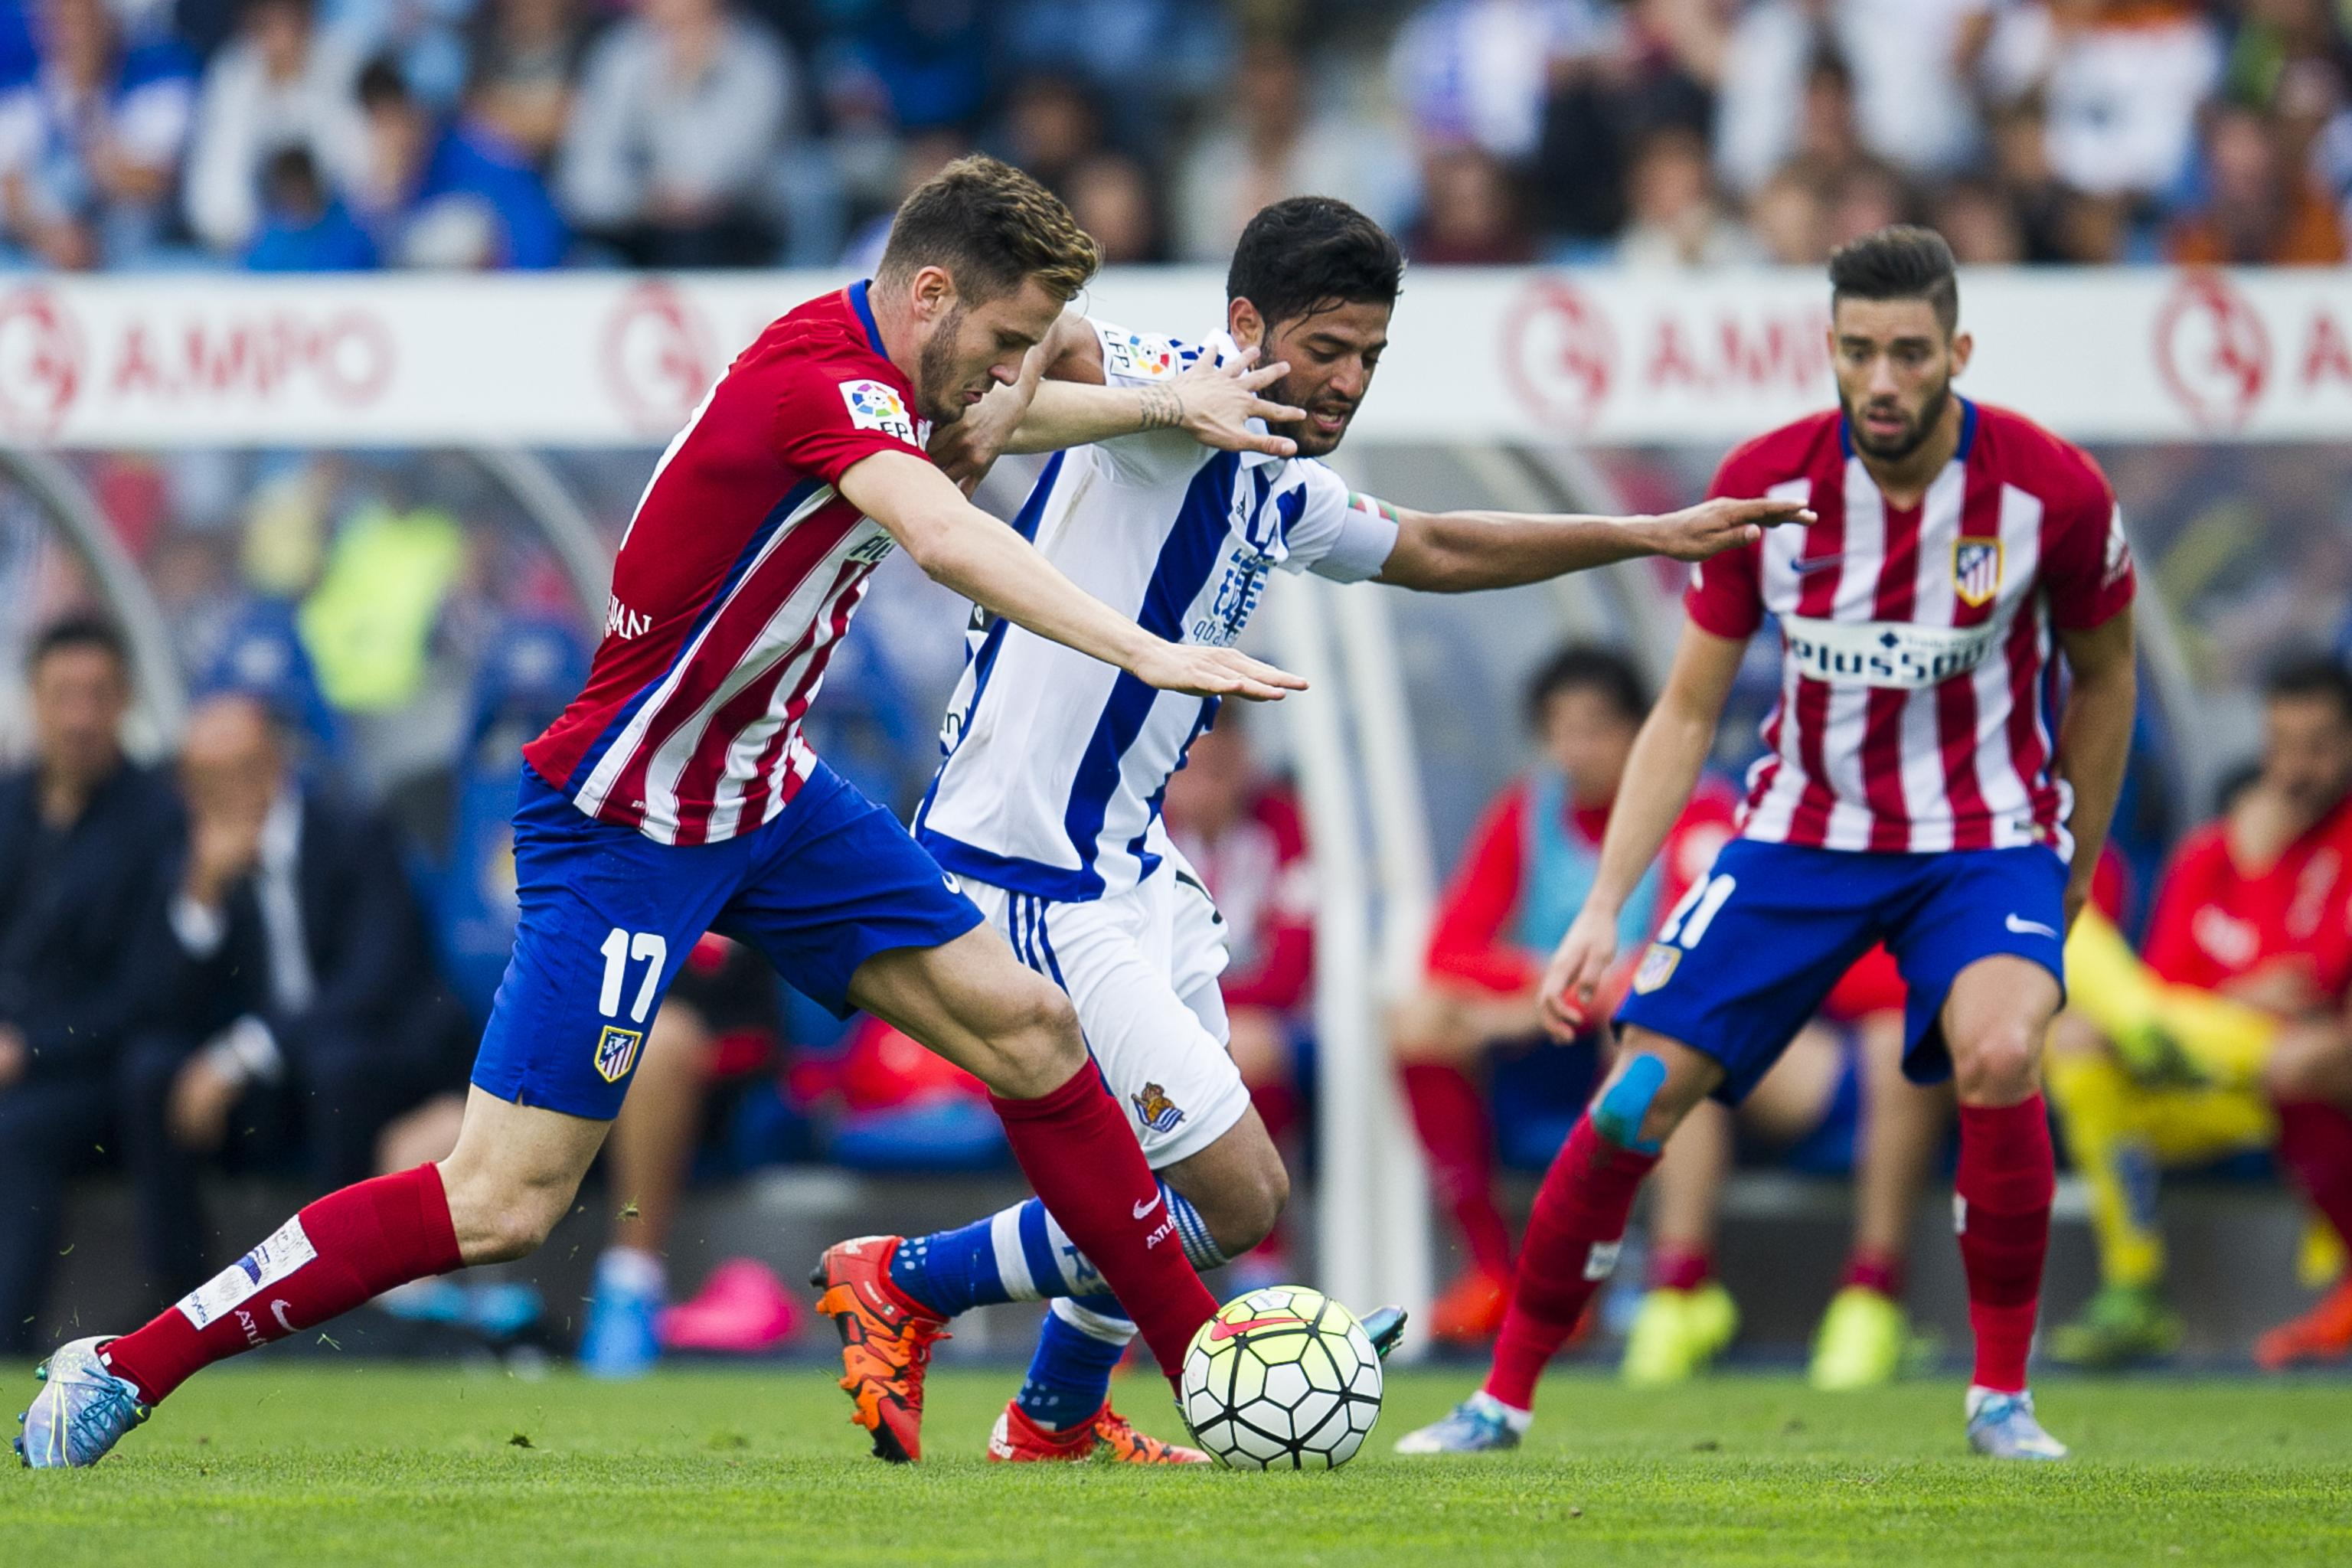 atletico madrid vs real sociedad free live stream